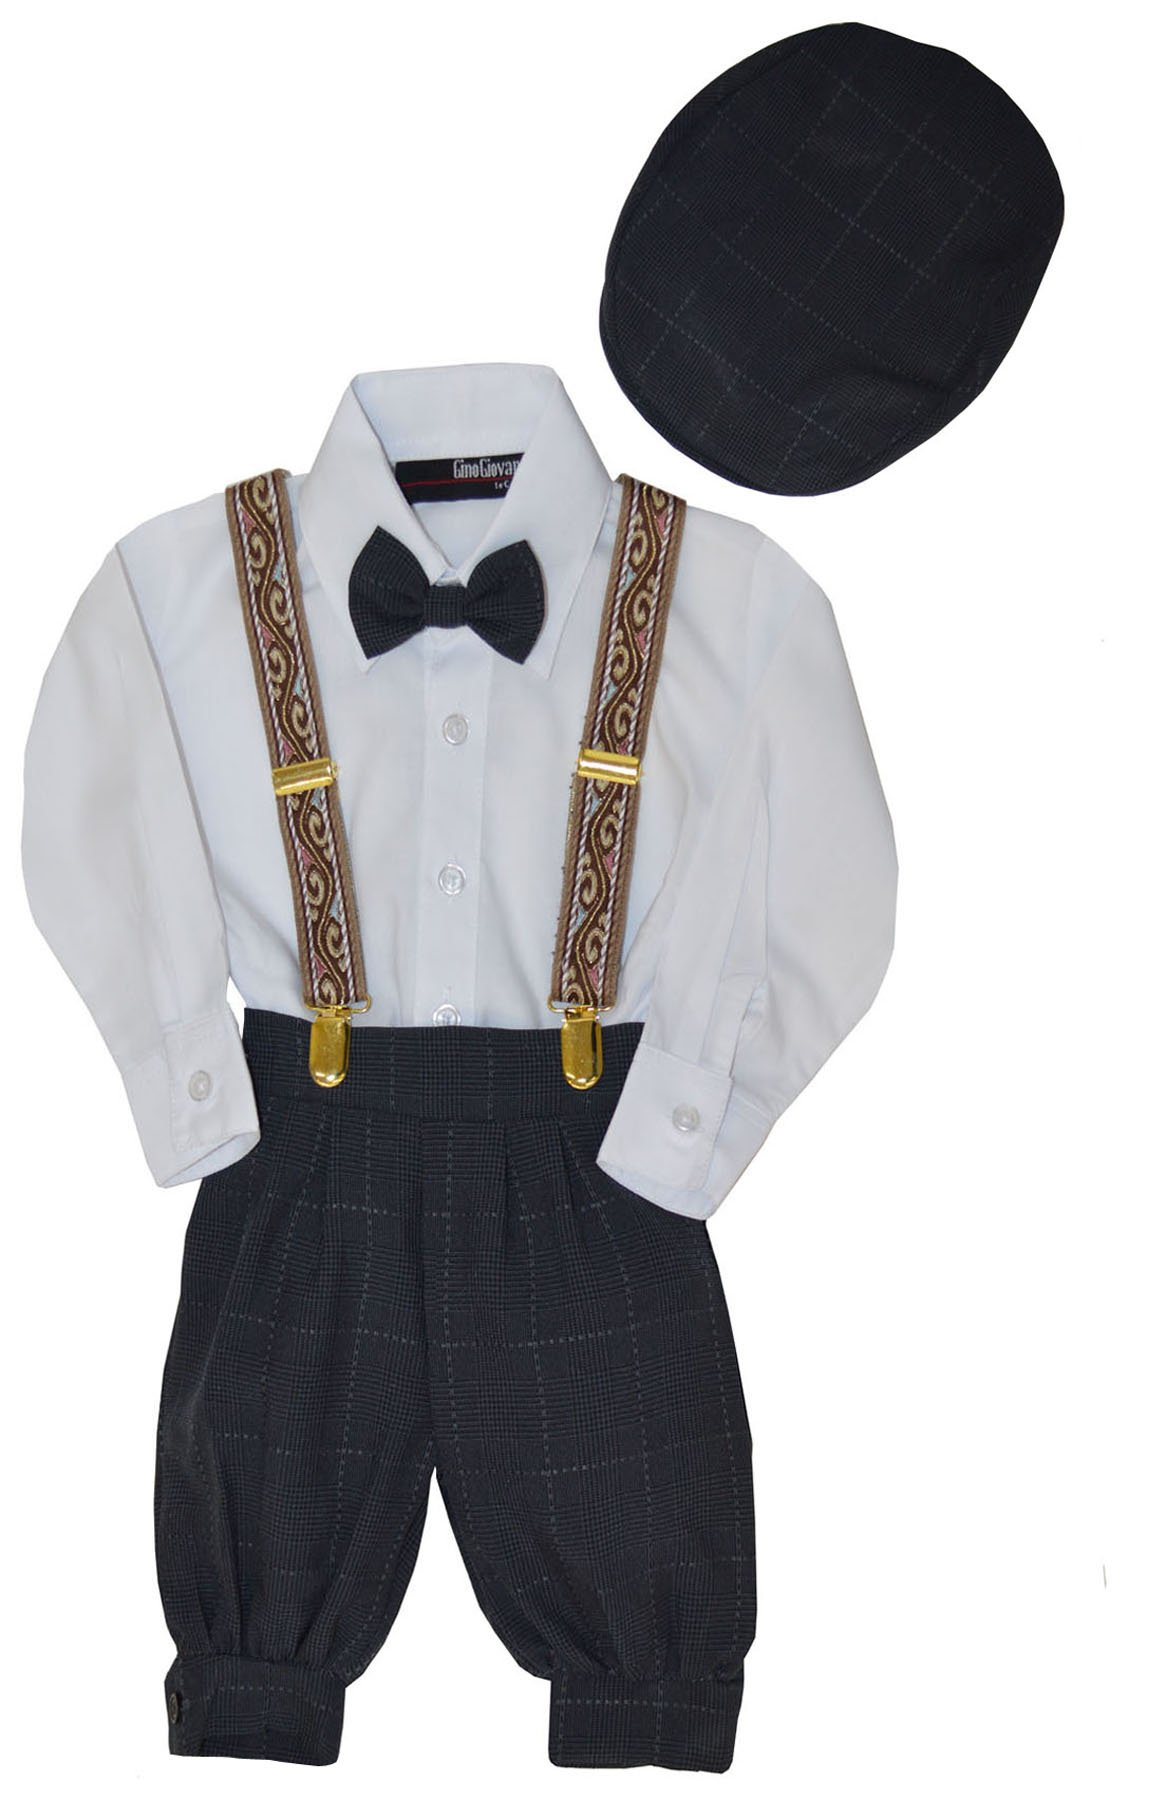 G284 Baby Boys Vintage Knickers Outfit Suspenders Set (7, Charcoal)